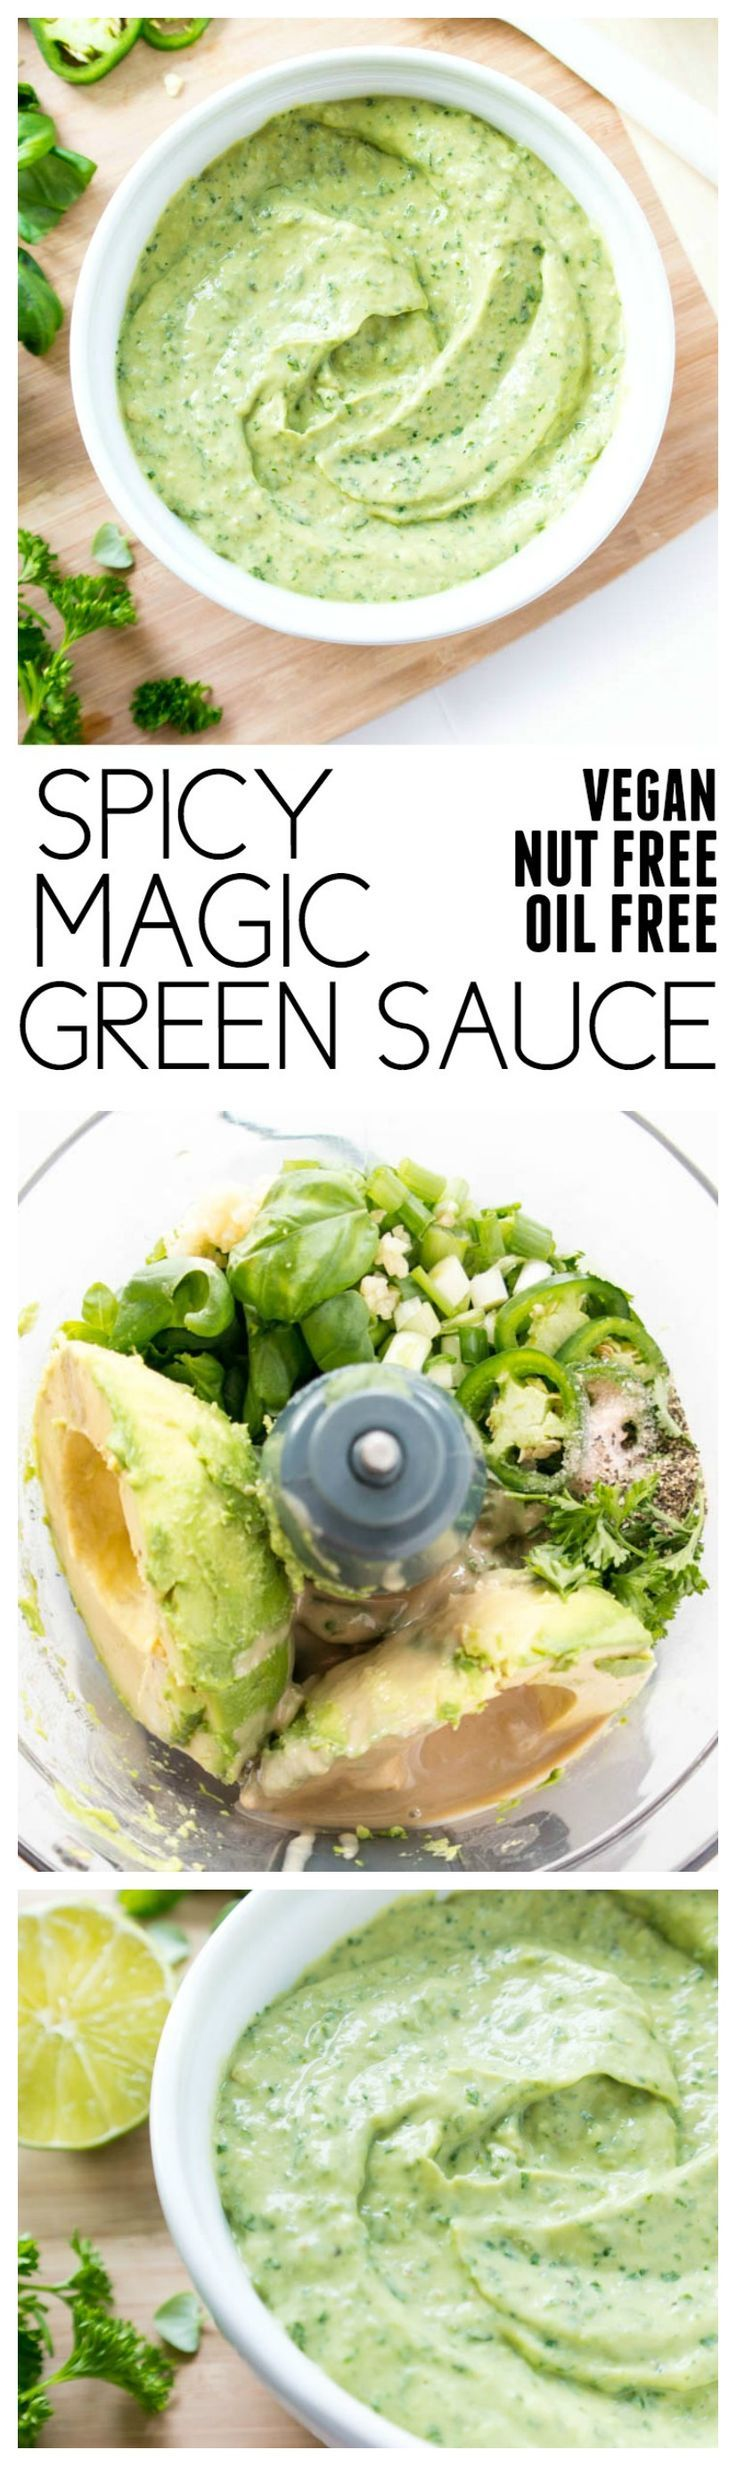 the most addicting sauce that you'll want to put on EVERYTHING! Spicy Magic Green Sauce. Vegan, Gluten Free, Oil Free, Nut Free. Complements all flavors, not just mexican flavors. Use as dipping sauce(Vegetarian Mexican Recipes)